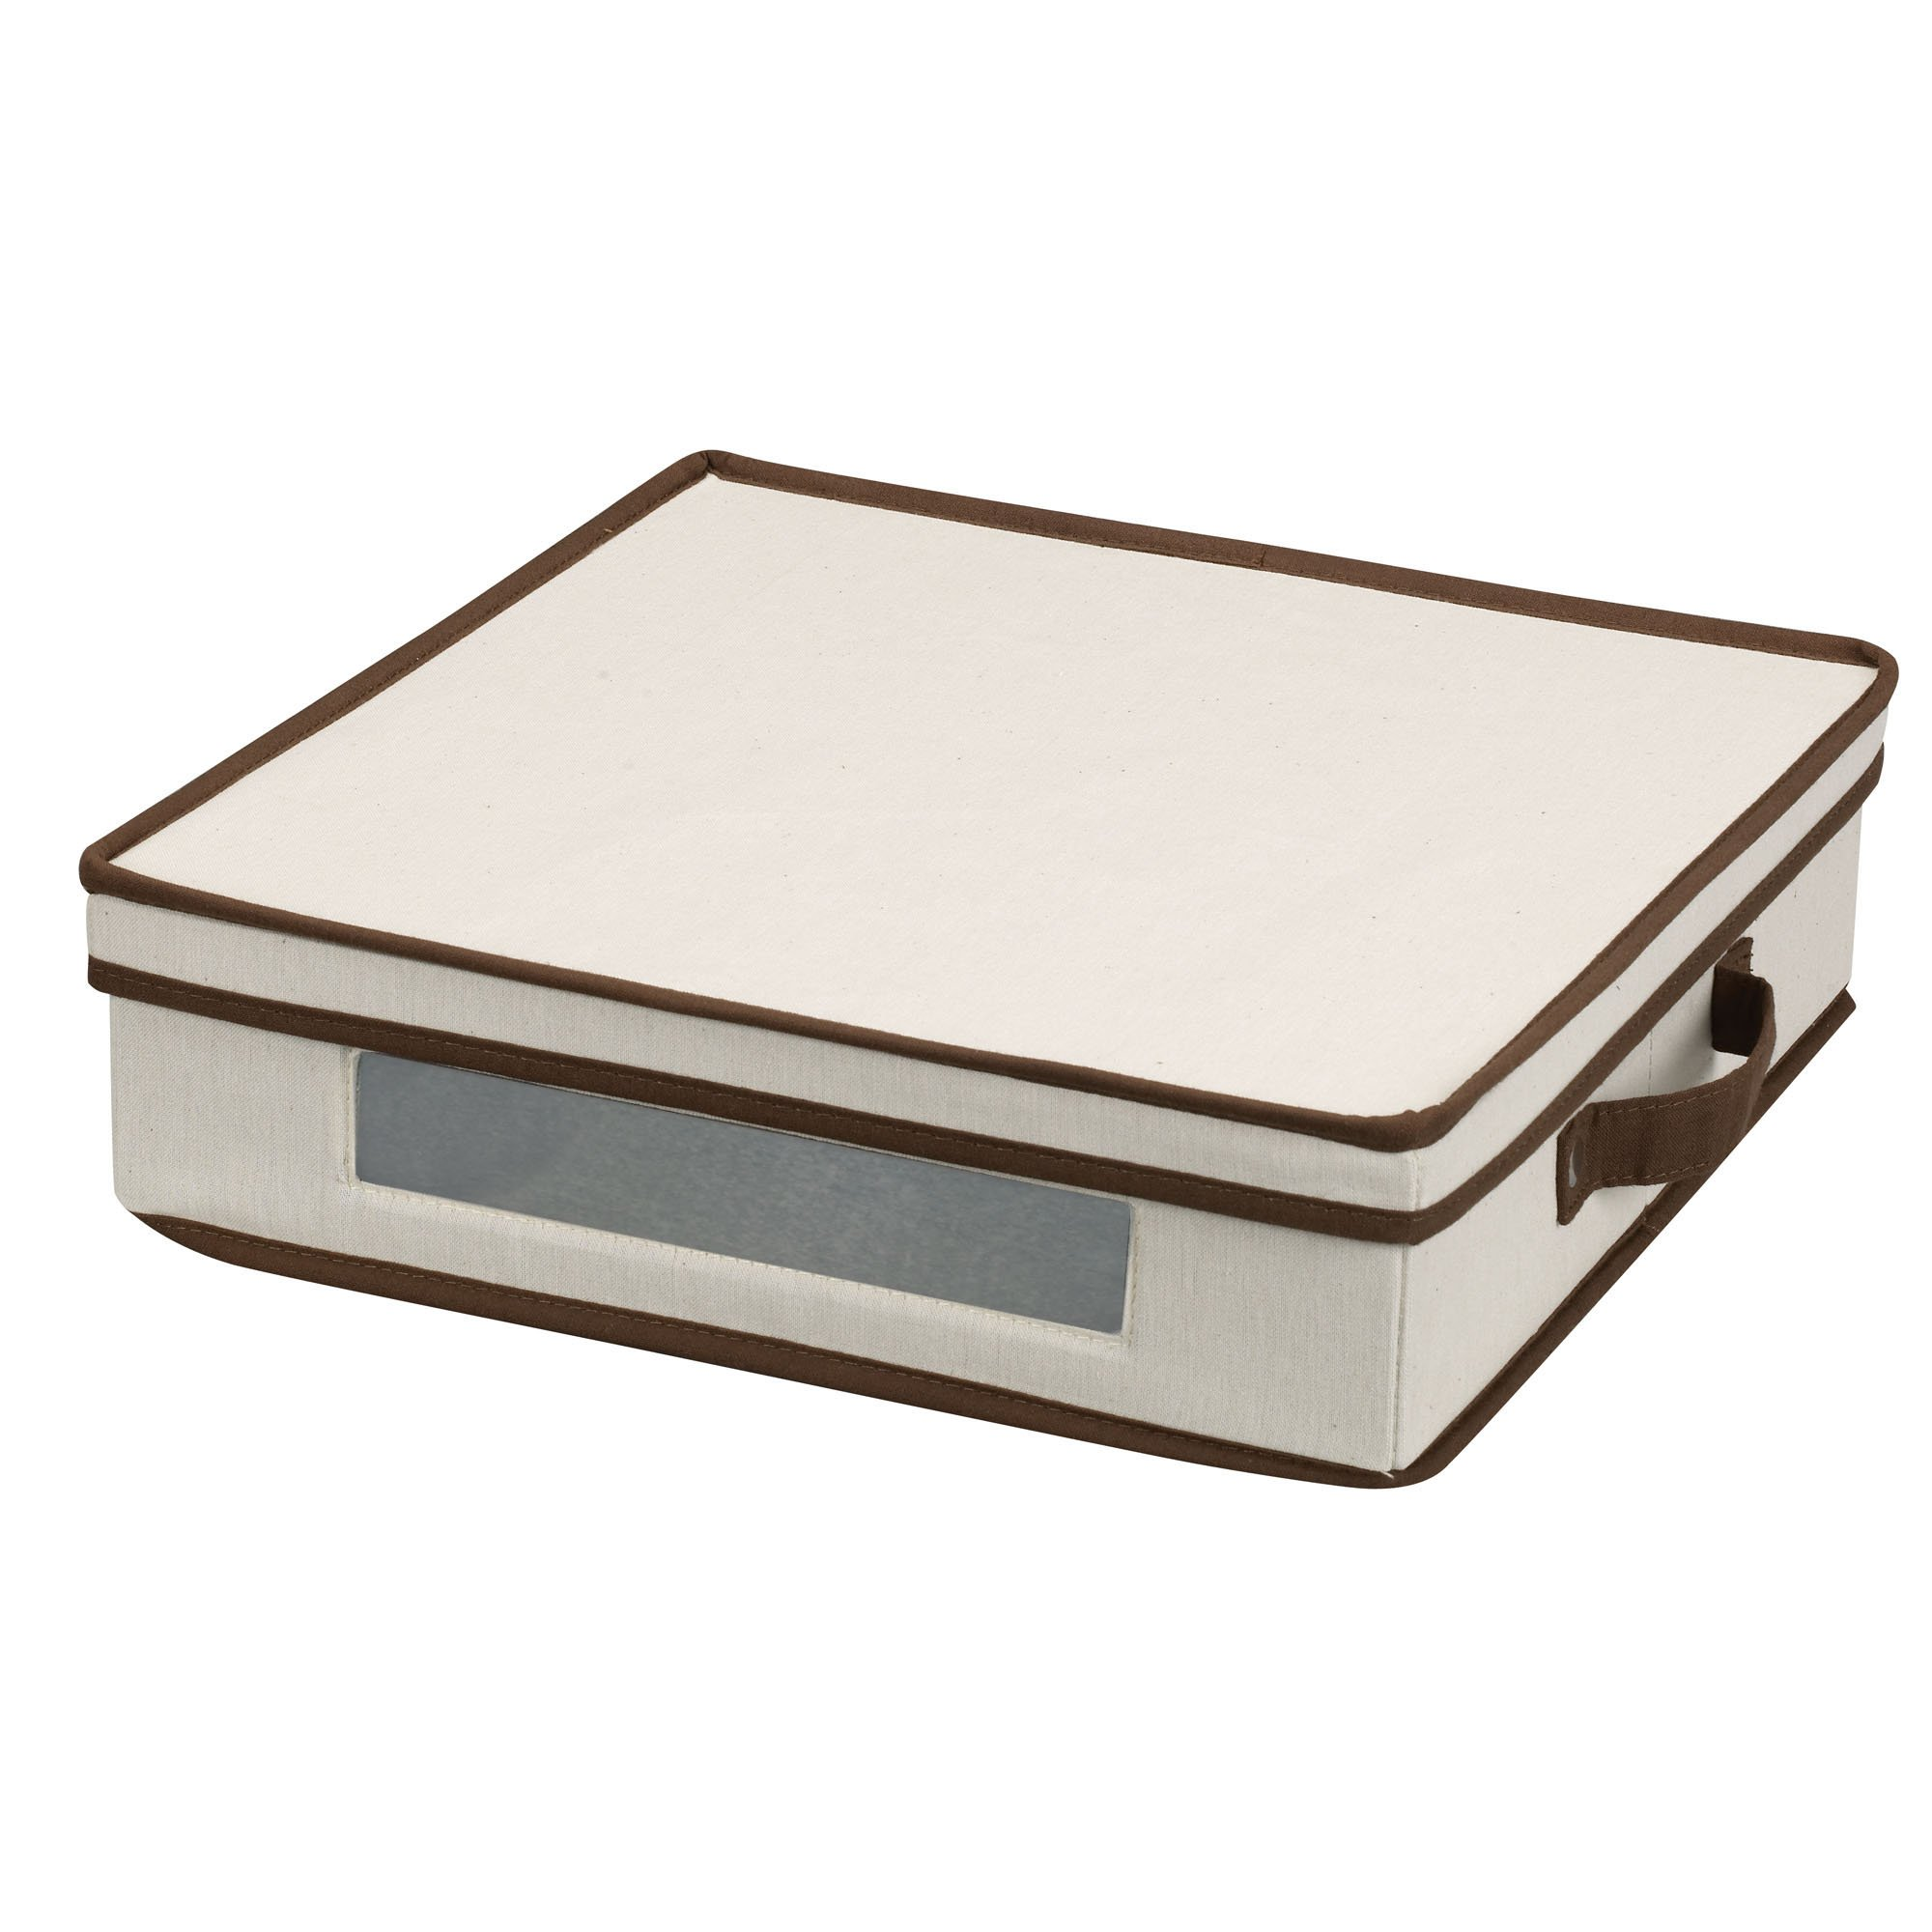 Household Essentials 537 Vision Storage Box with Lid and Handles | Charger Plates and Platters | Natural Canvas with Brown trim